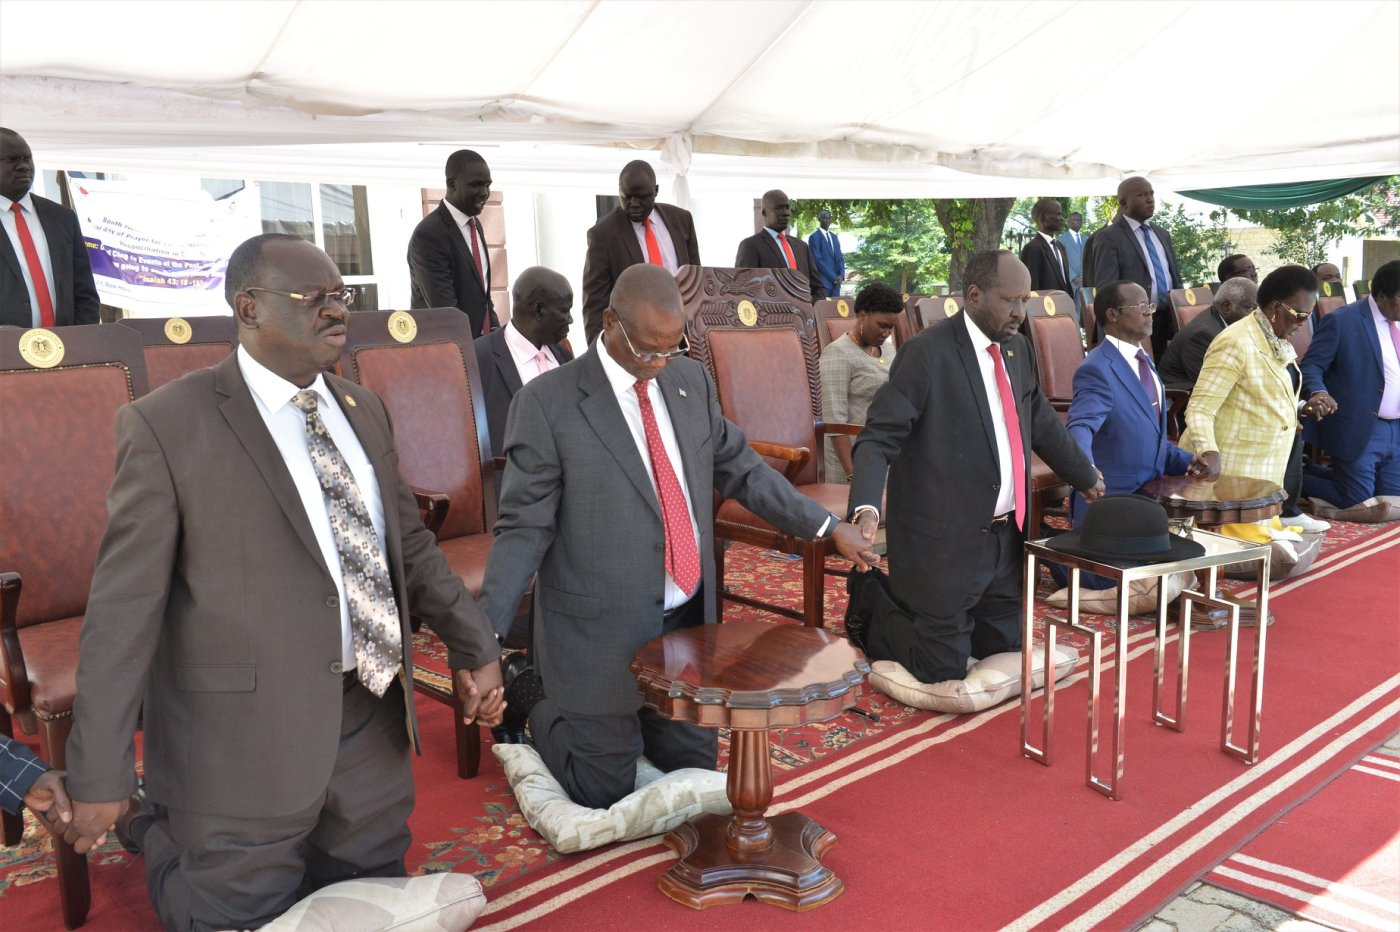 Leaders holding hands during the prayers meeting in J1(Photo credit: Nyamilepedia)